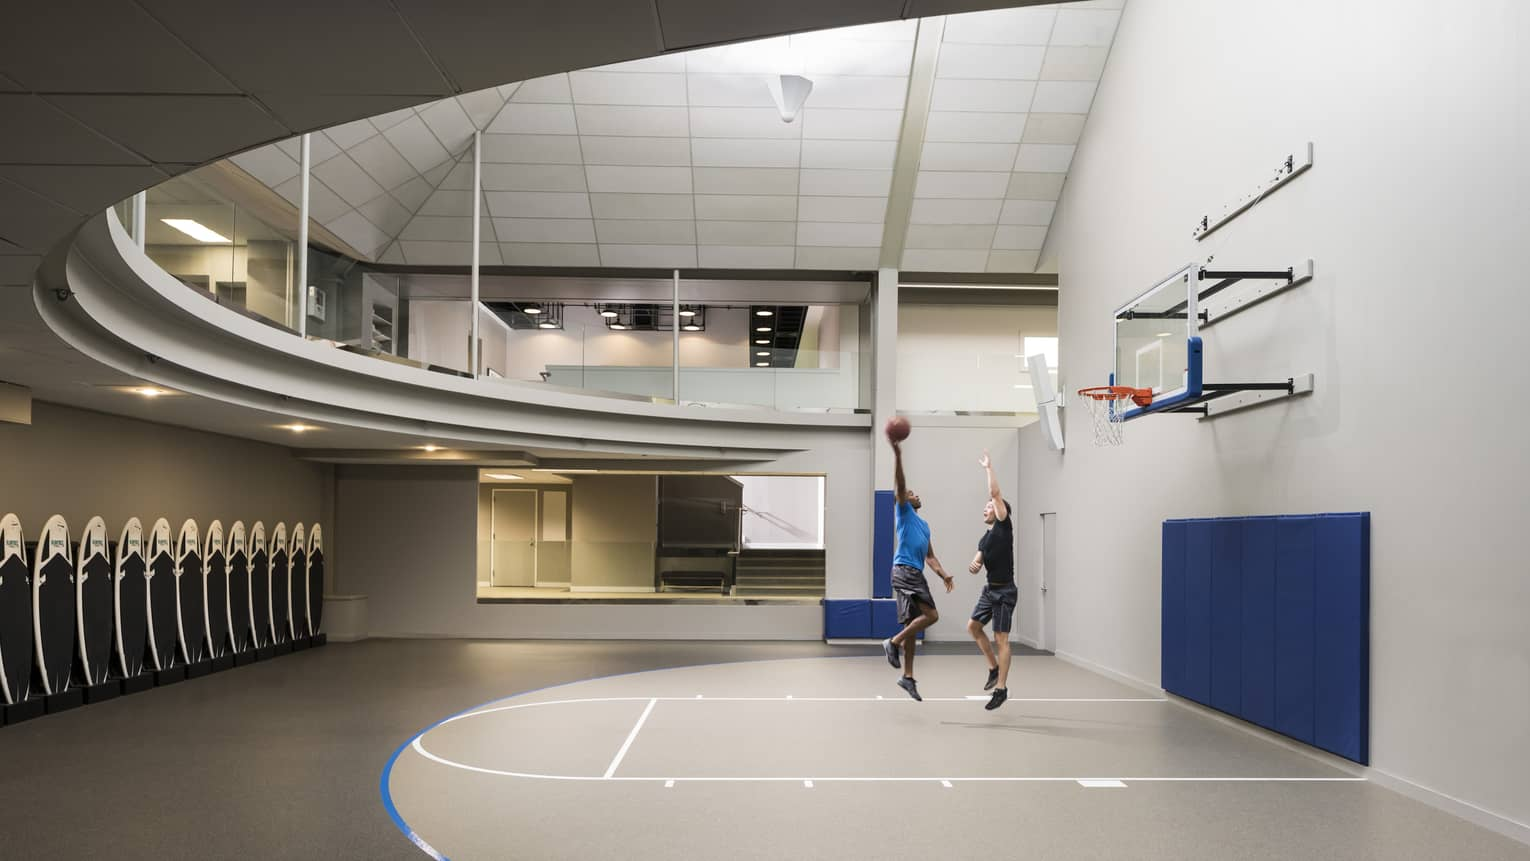 Two men play basketball on small court under modern curved ceiling